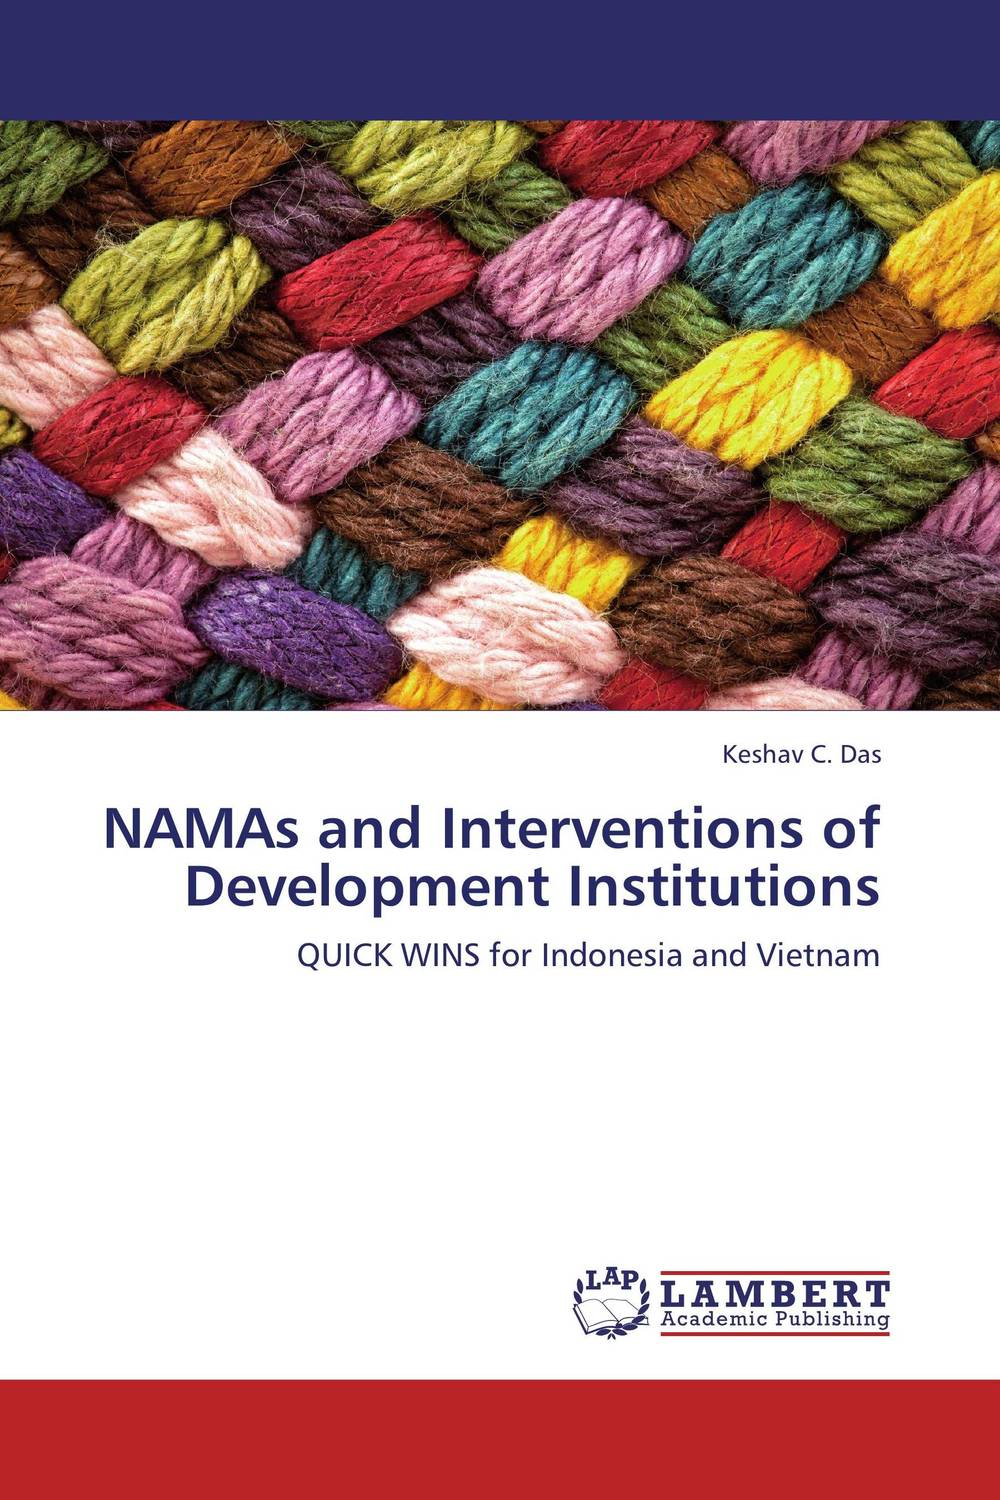 NAMAs and Interventions of Development Institutions development of ghg mitigation options for alberta's energy sector